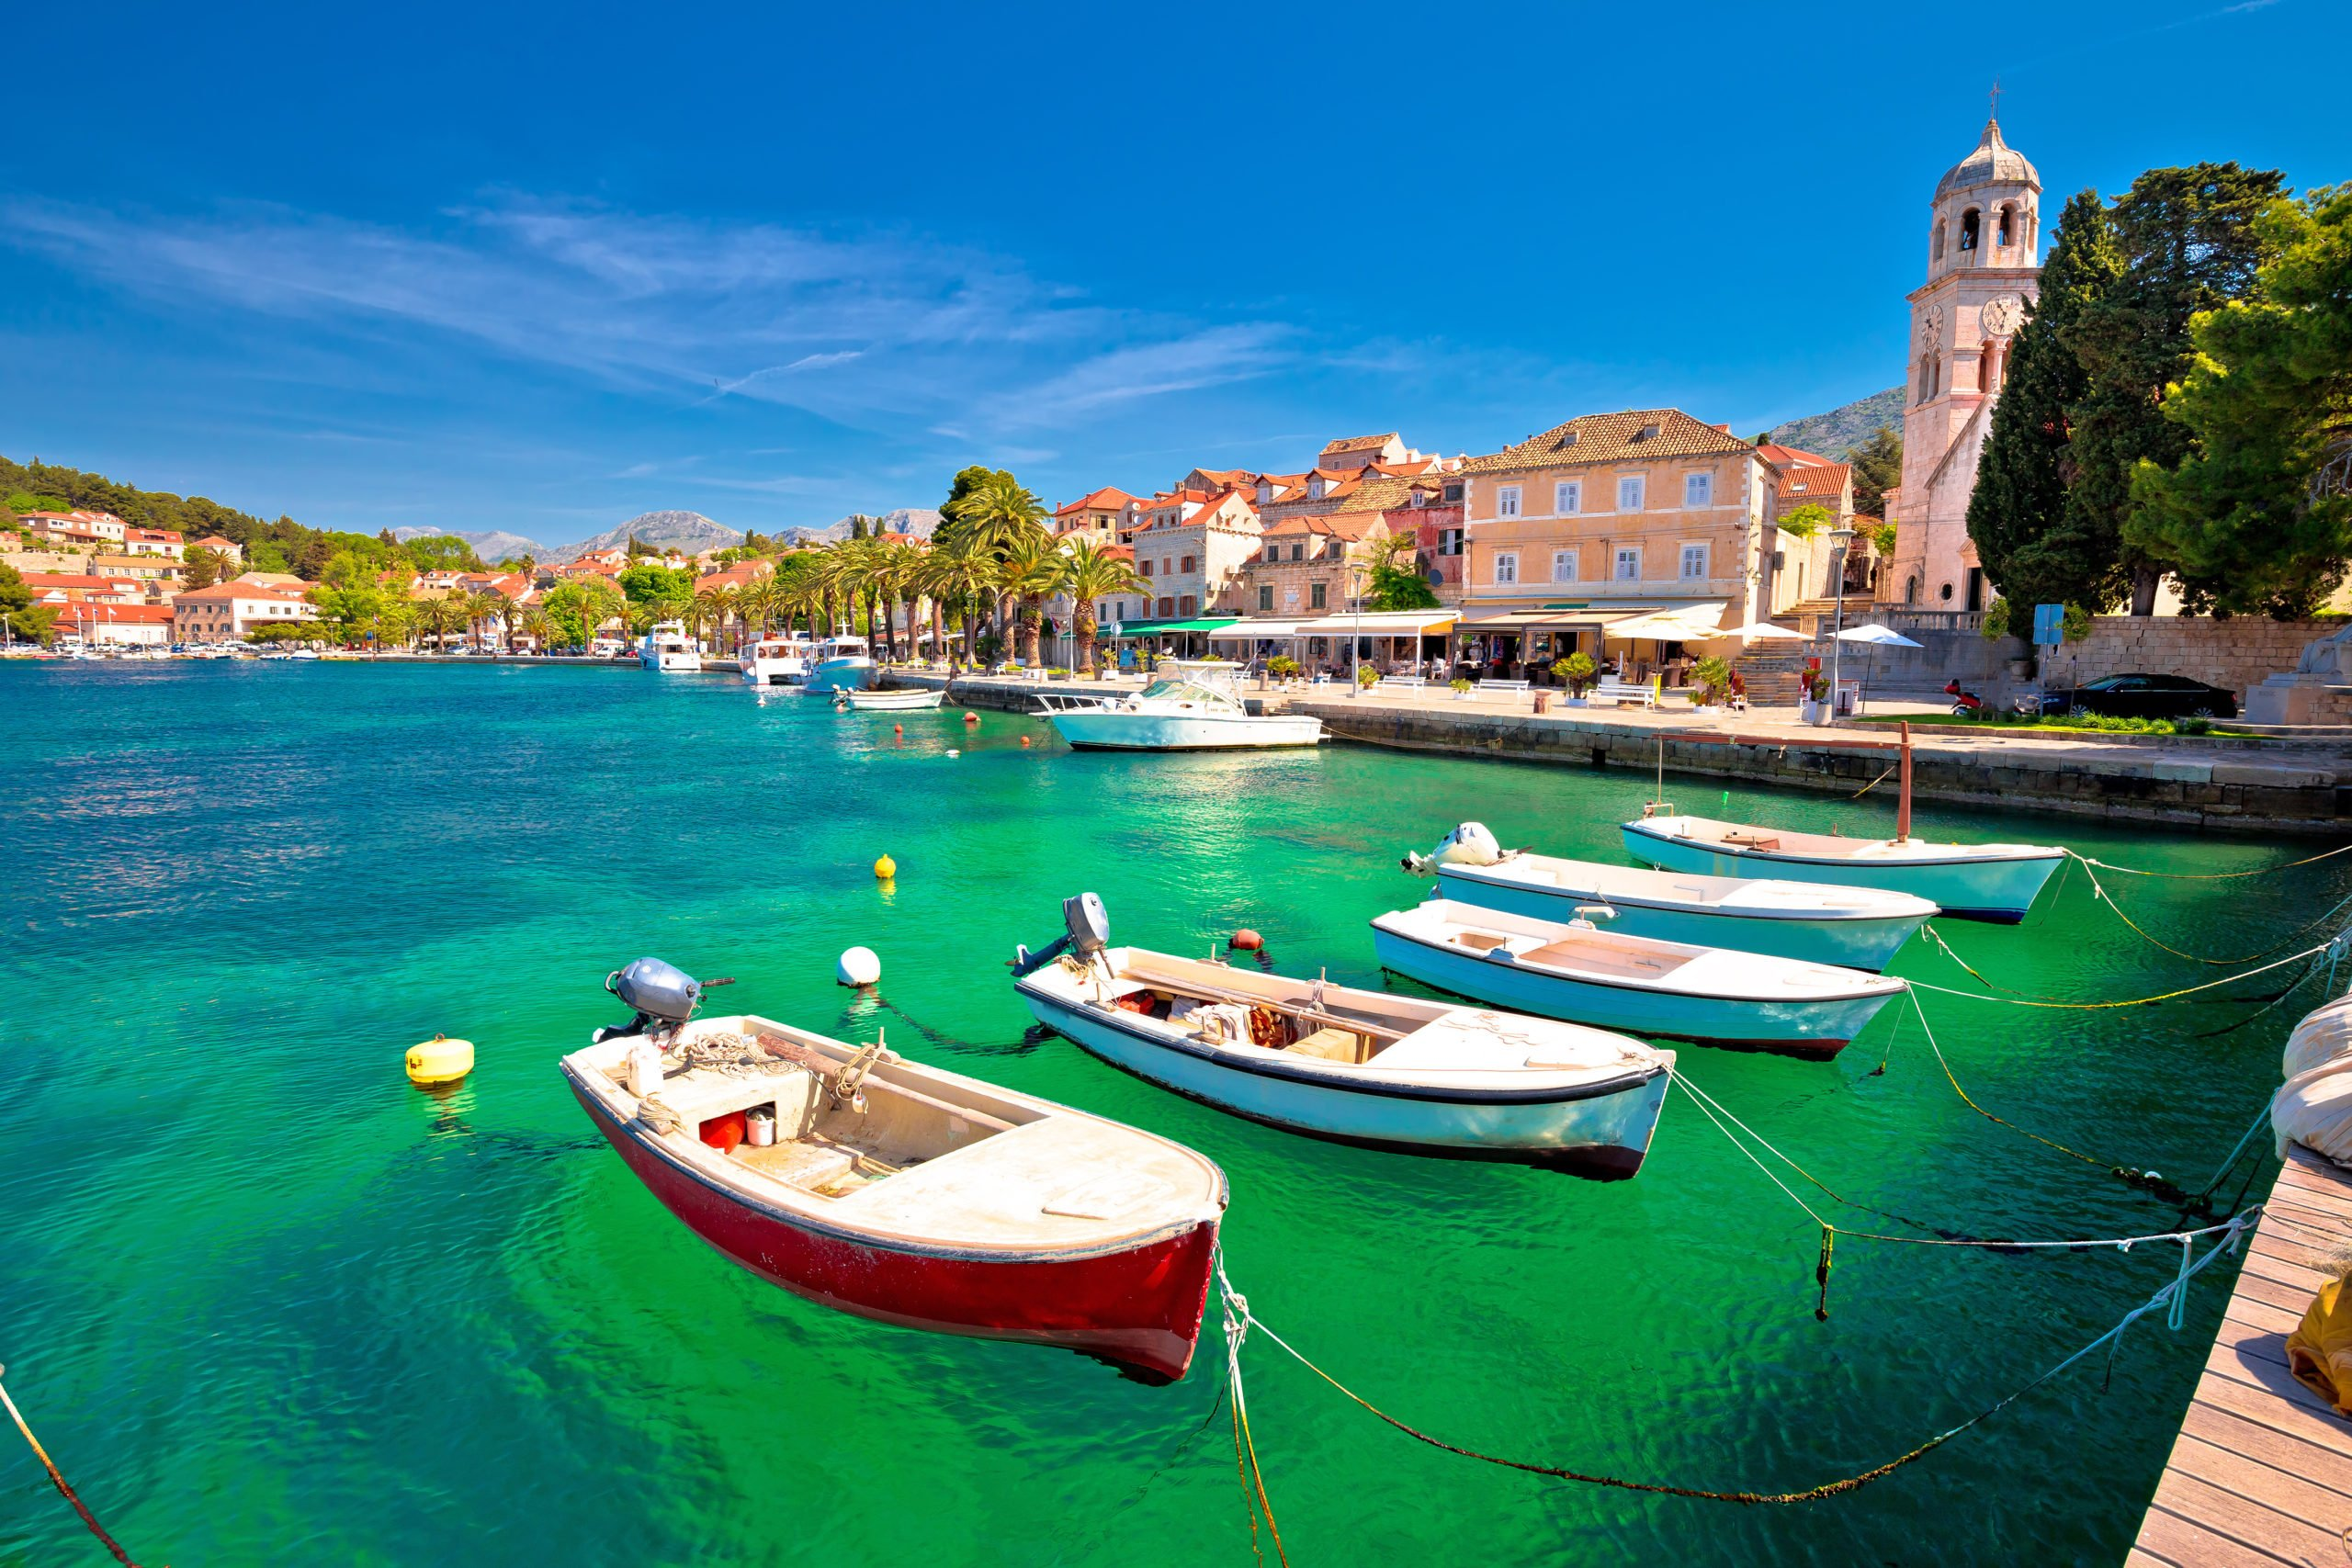 Take A Walk At The Beautiful Waterfront Of Catvat During The Dubrovnik Highlights & Cavtat Shore Excursion